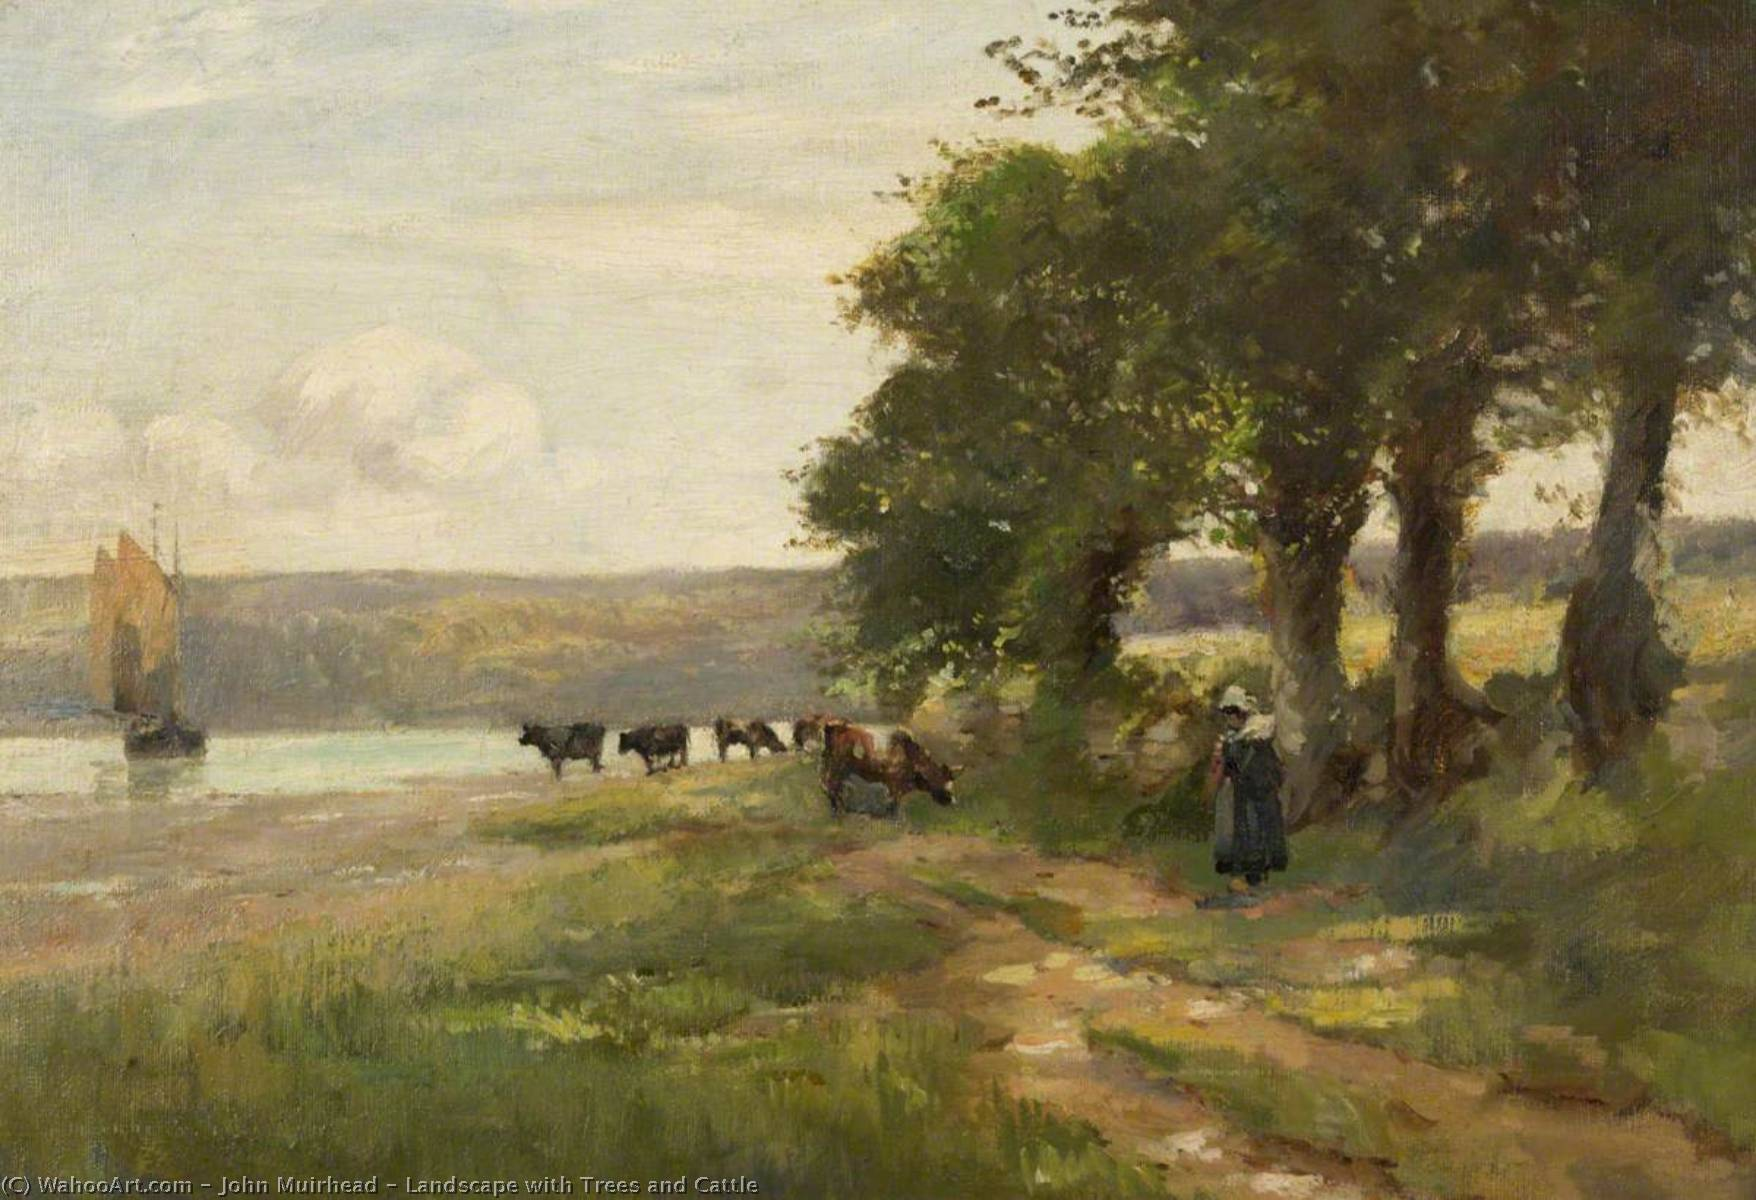 Wikioo.org - The Encyclopedia of Fine Arts - Painting, Artwork by John Muirhead - Landscape with Trees and Cattle